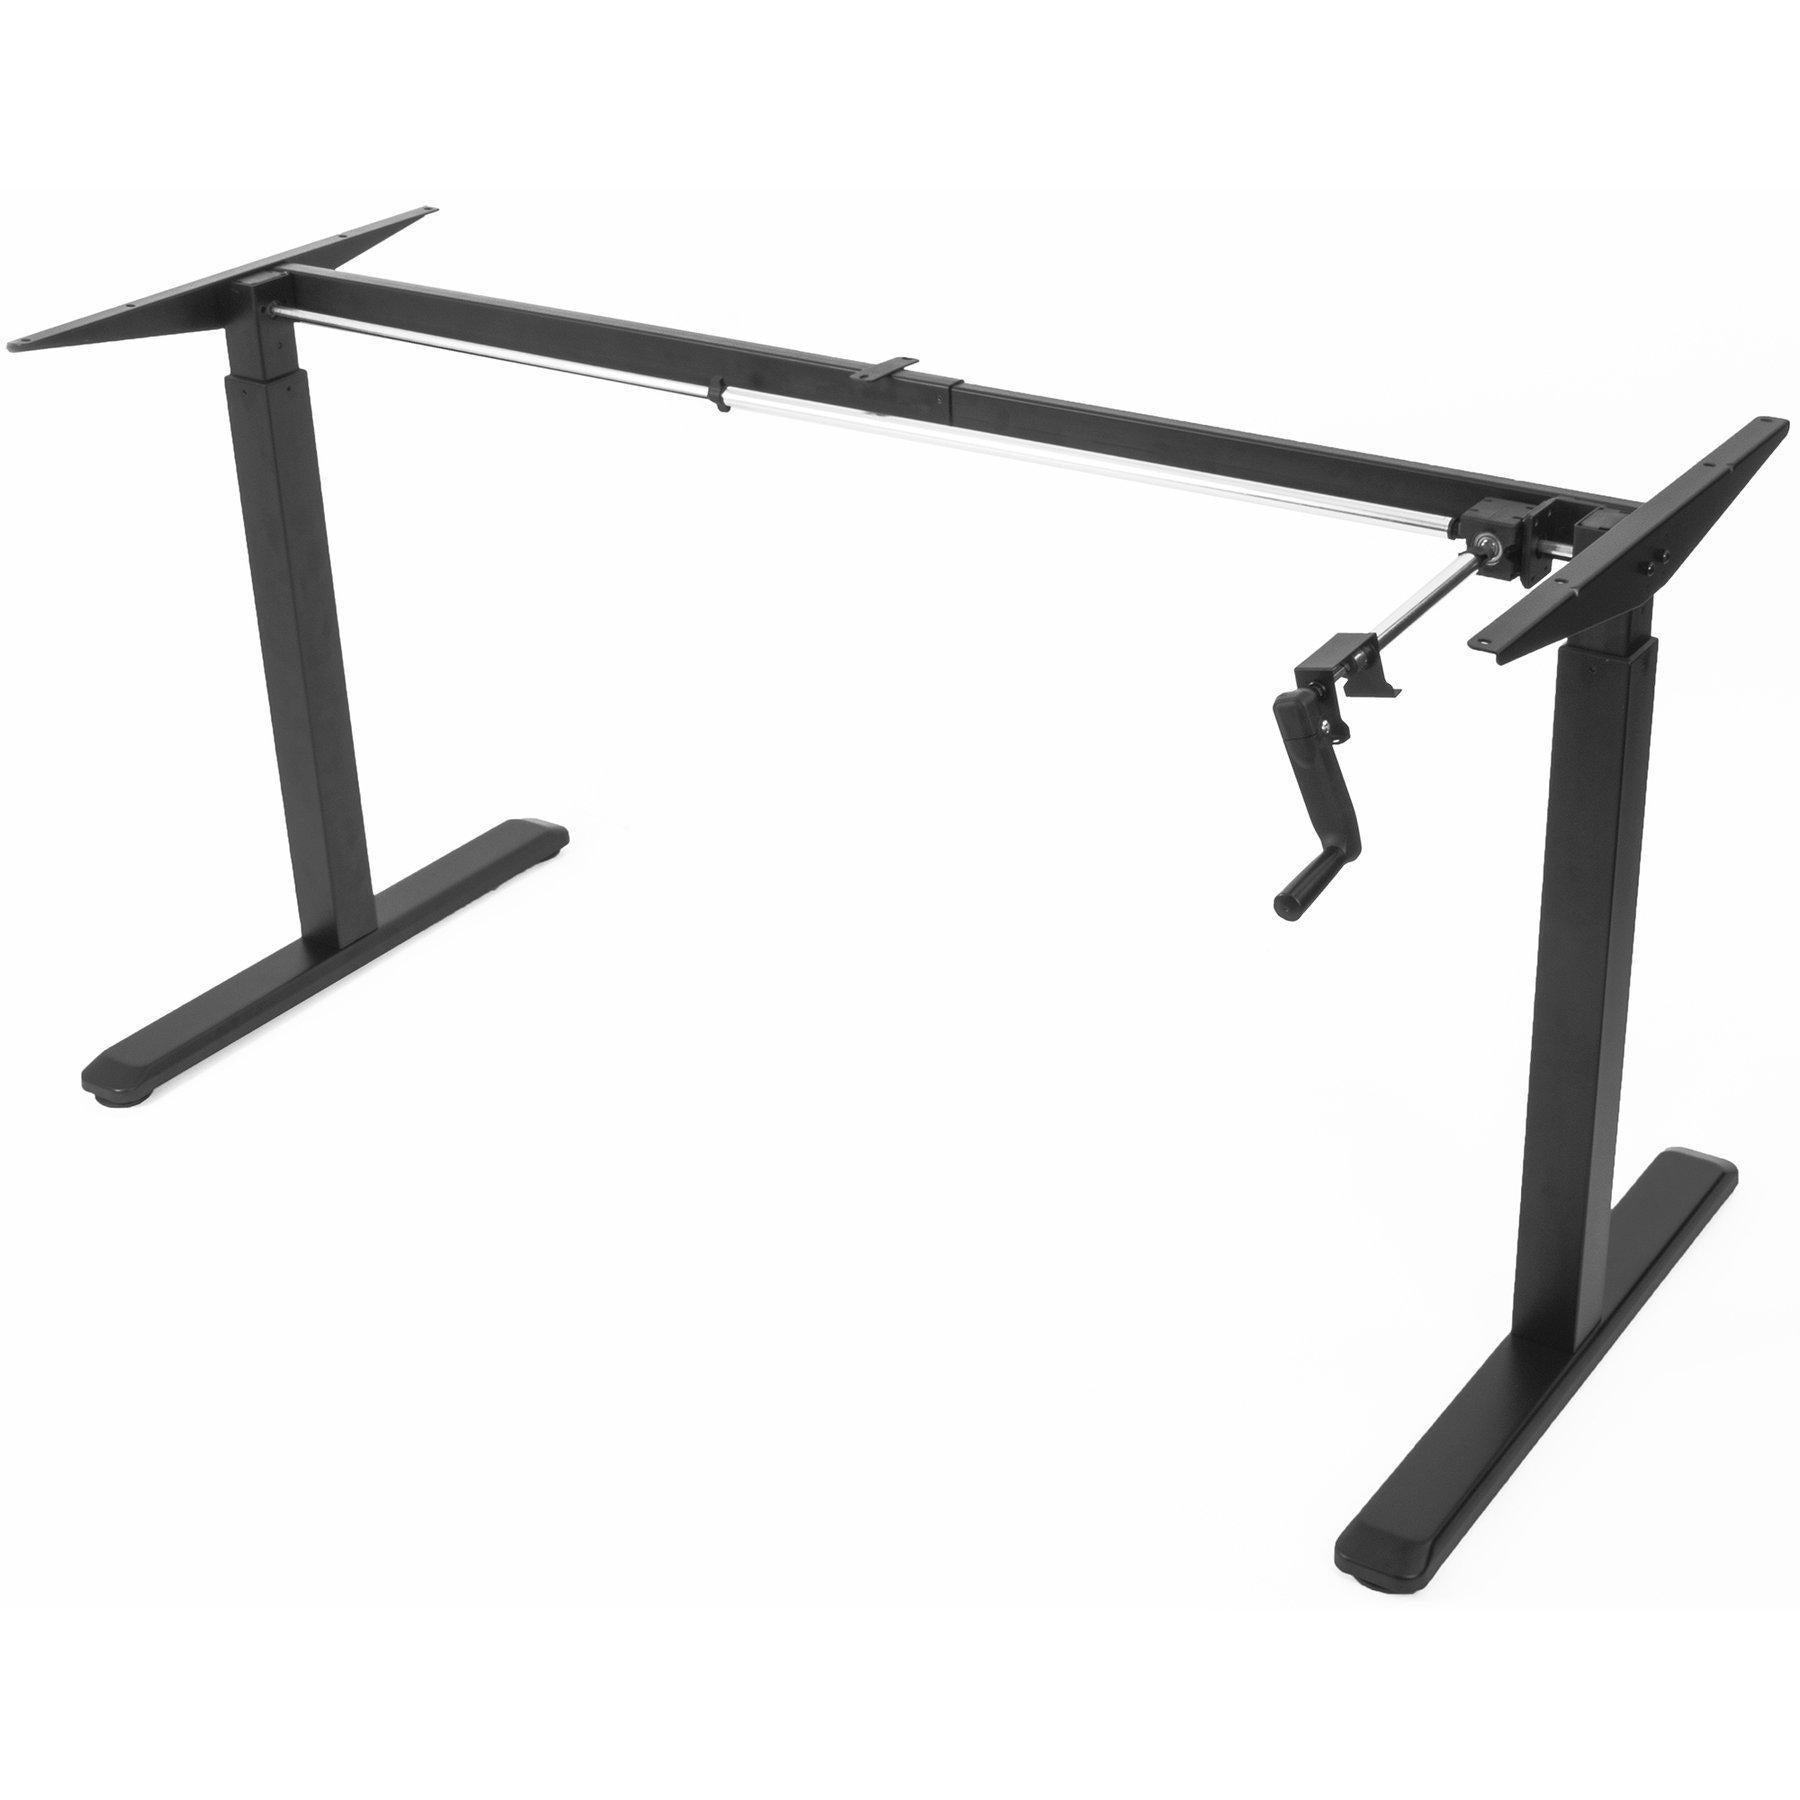 VIVO Crank Height Adjustable Desk Frame - DESK-V101M